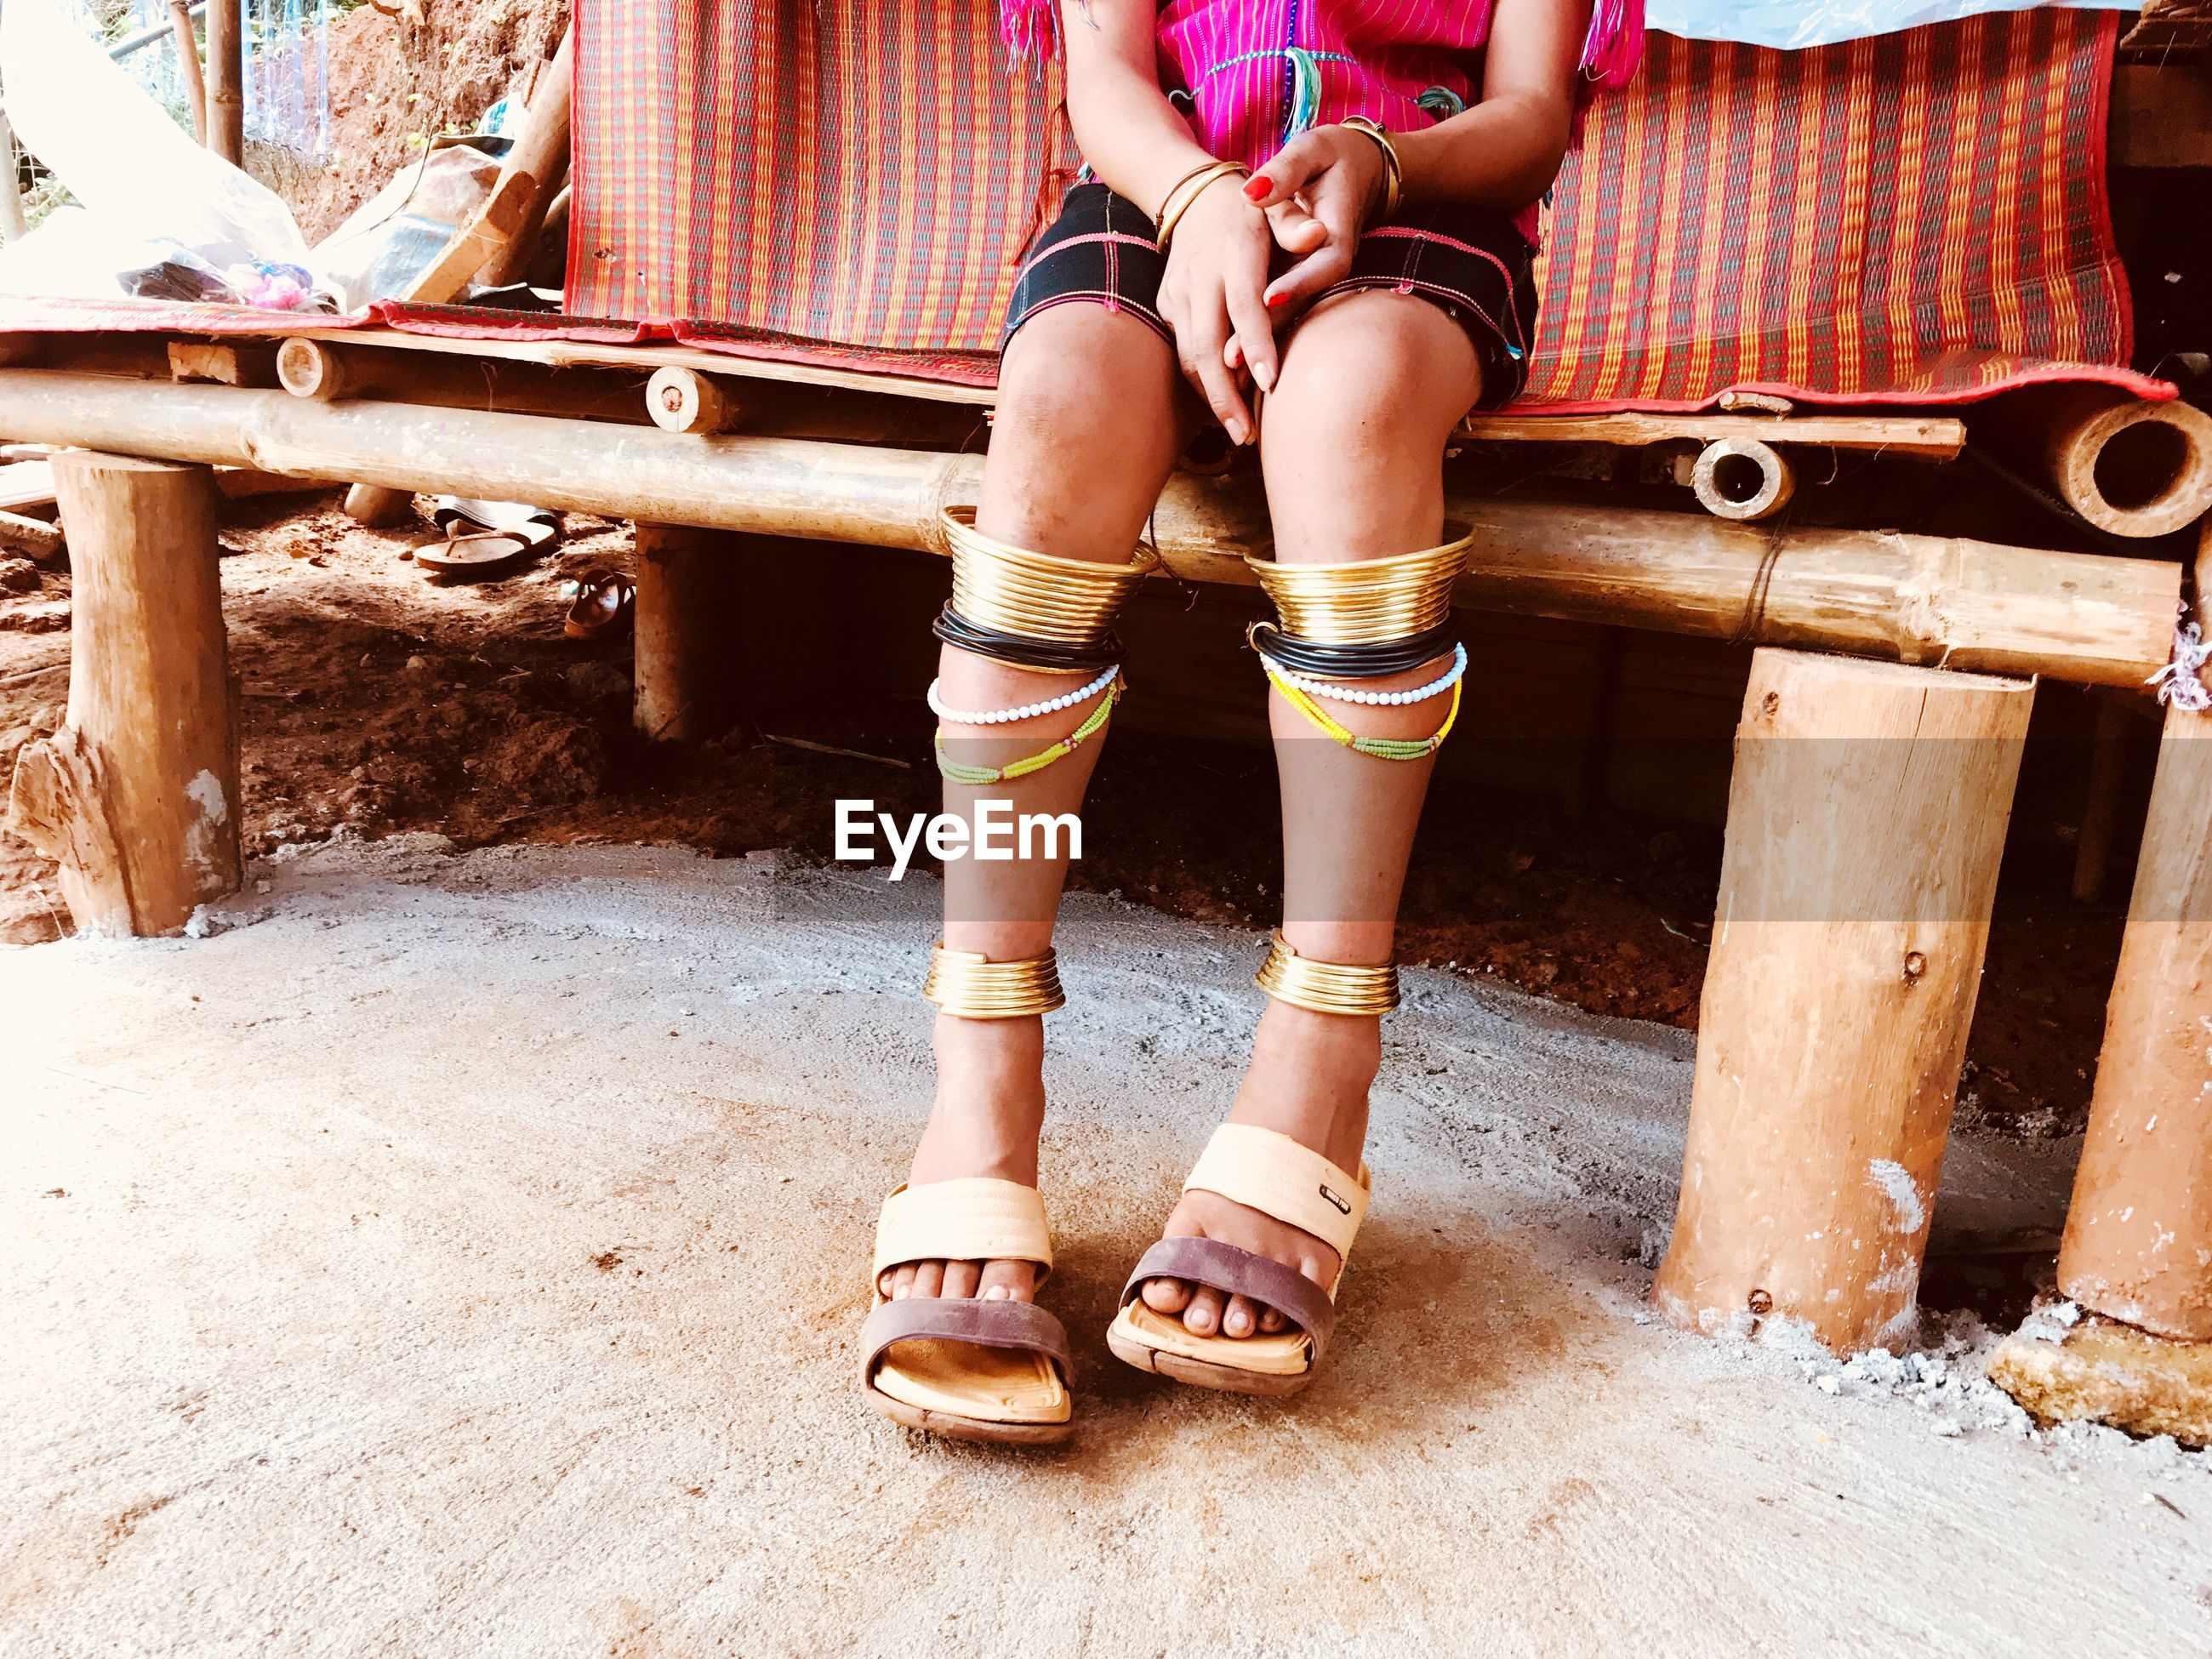 Low section of woman wearing anklets while sitting on bench